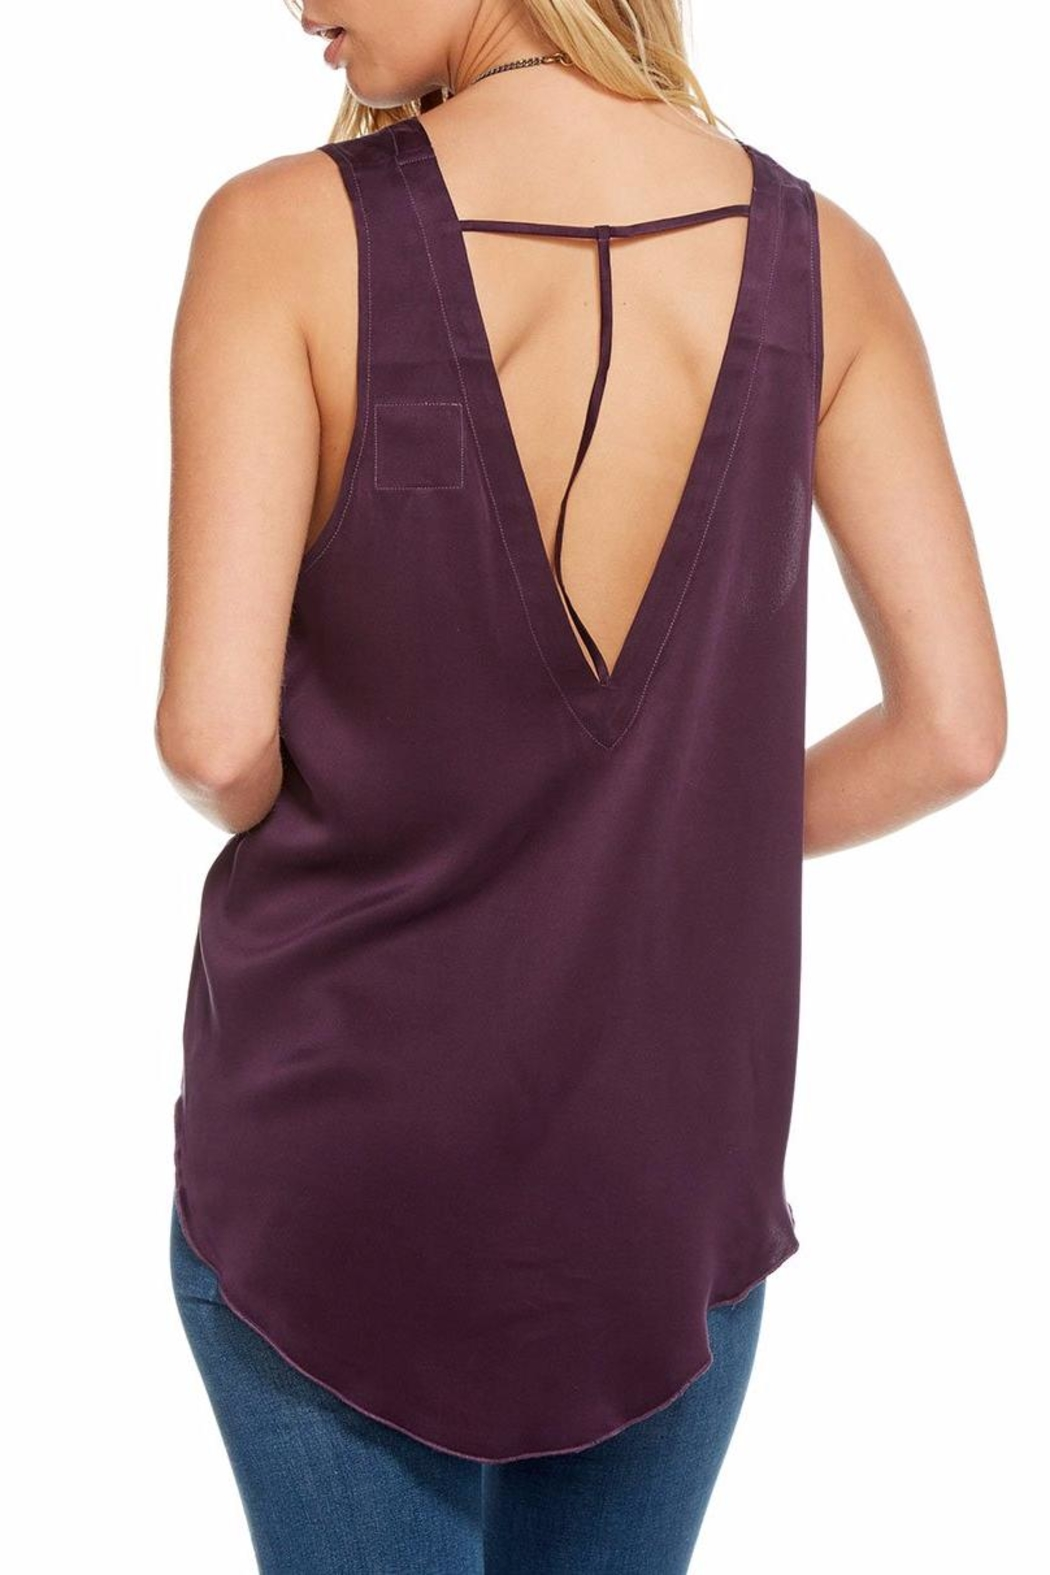 Chaser Silk Charmeuse T-Back - Side Cropped Image